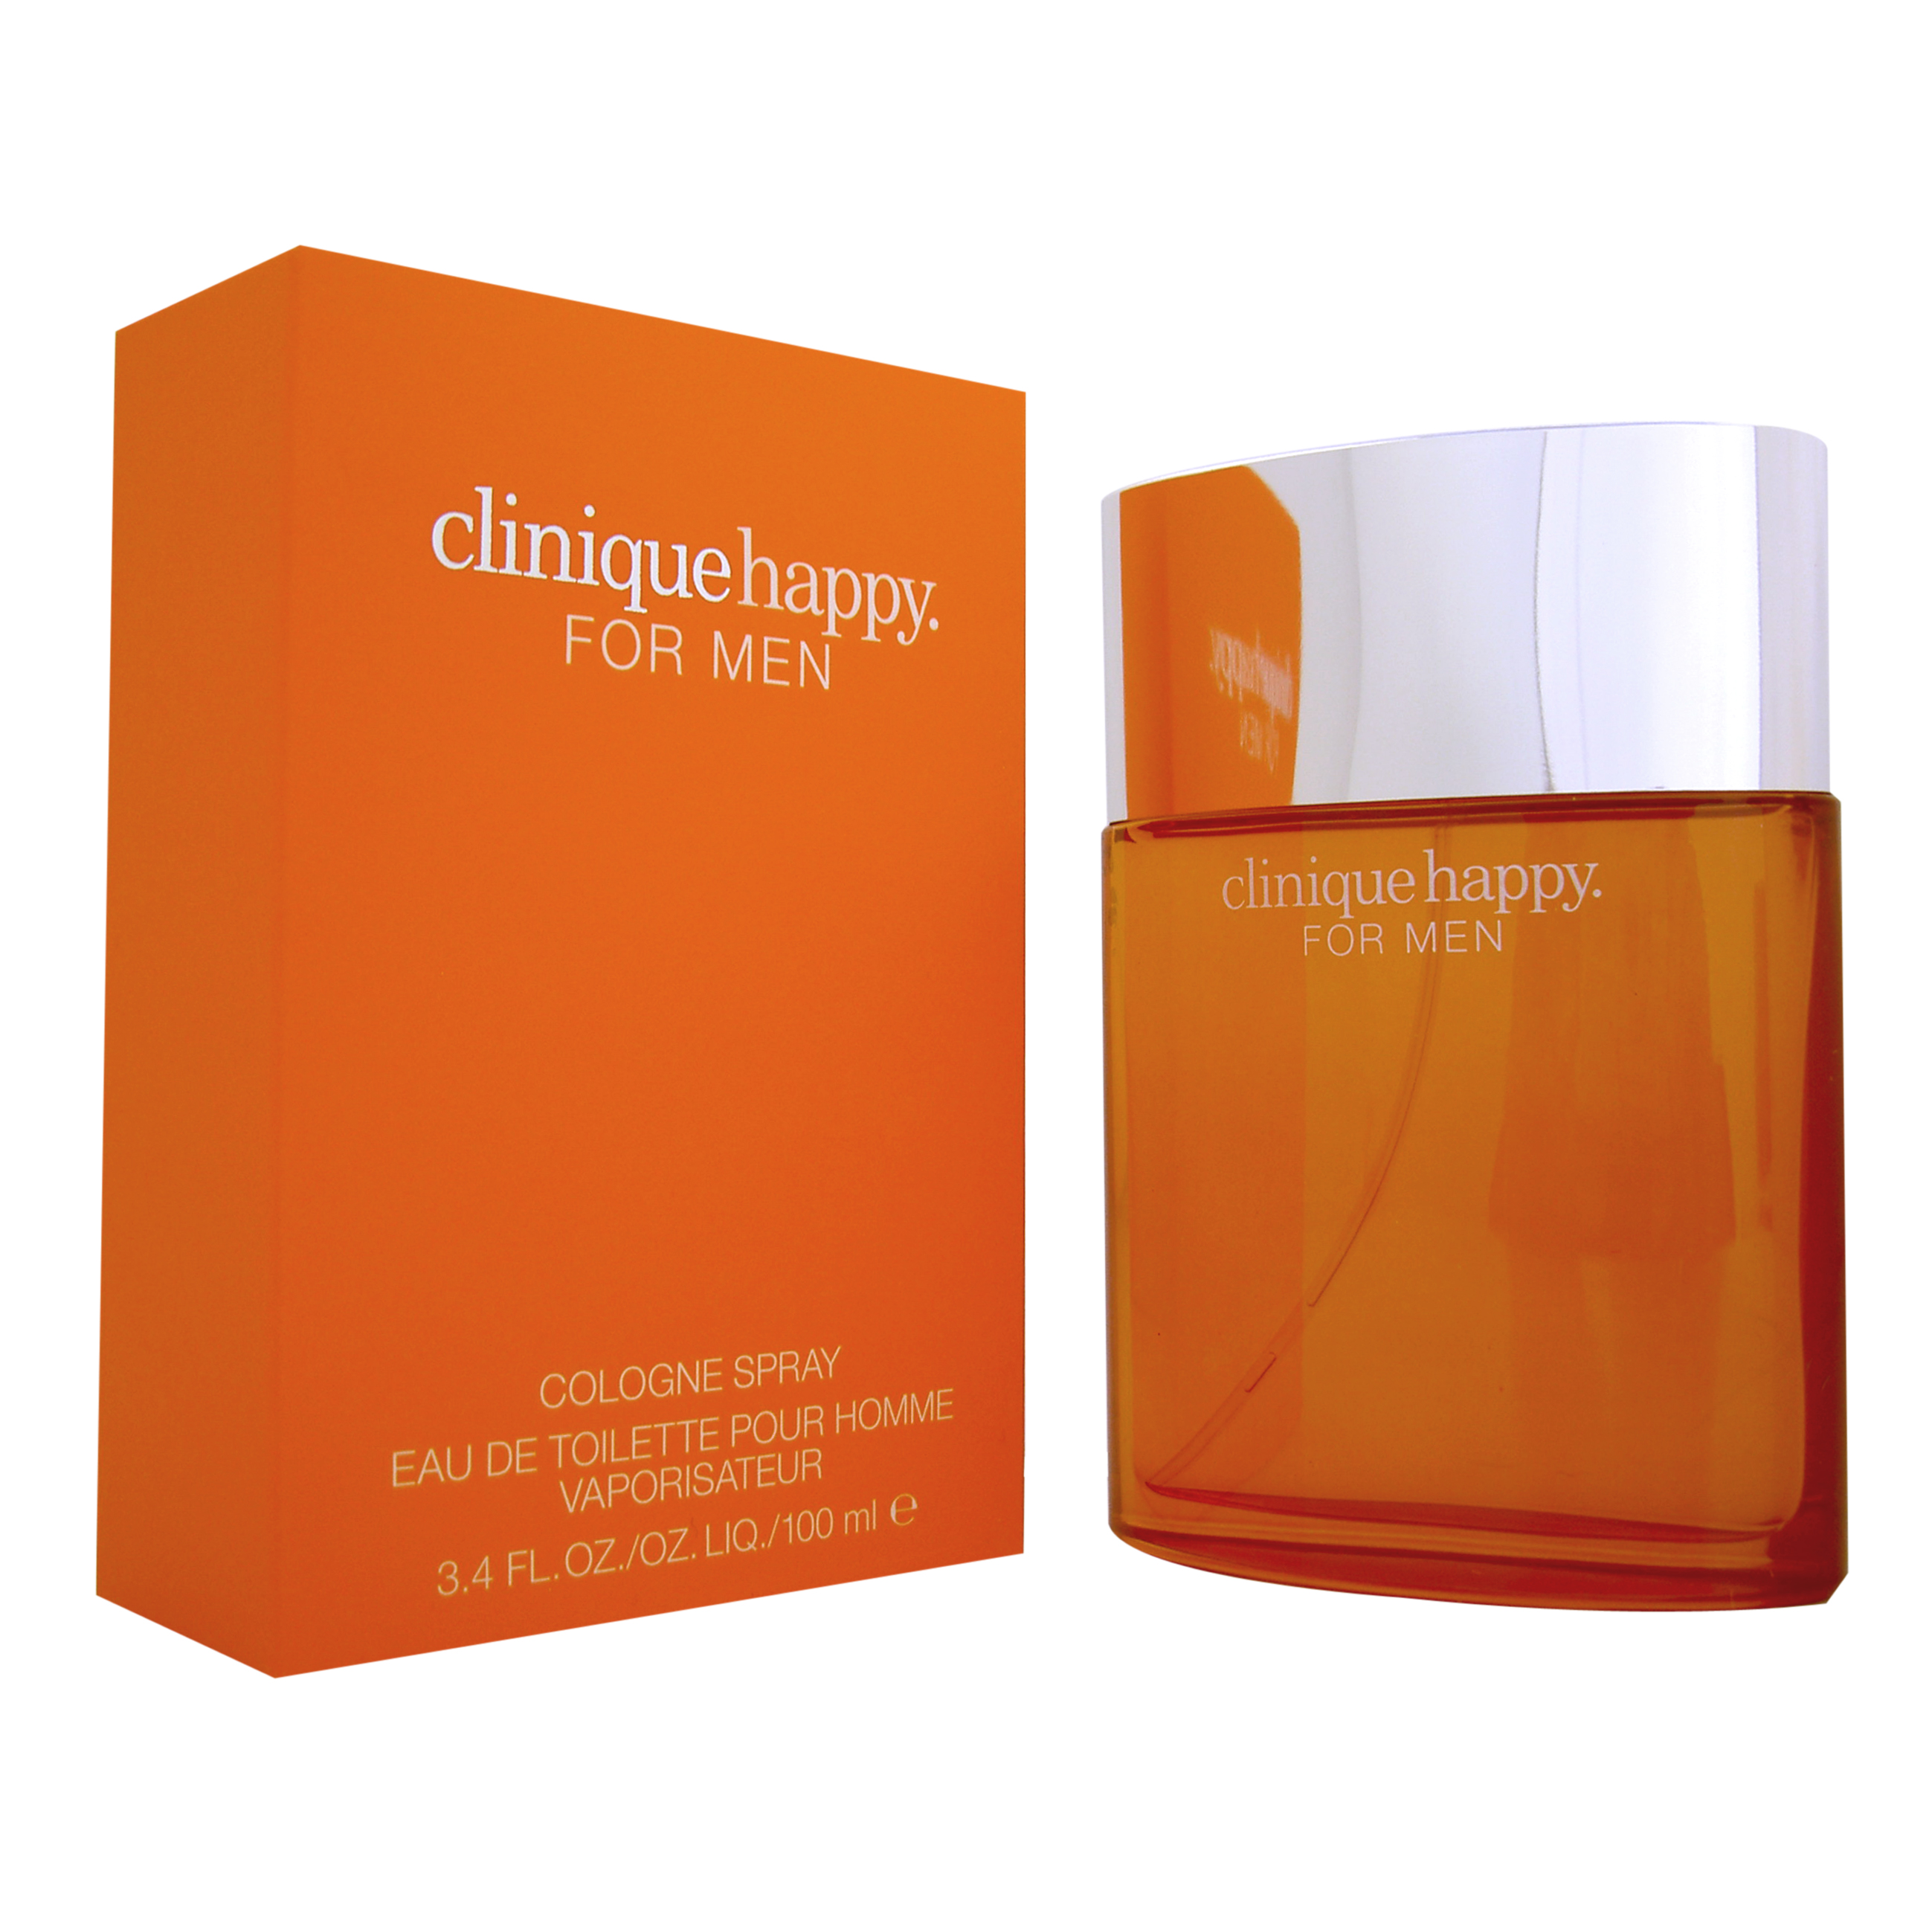 Clinique Happy for Men EDT 100 ml, Health & Beauty, Perfumes, Nail Care, & Others on Carousell